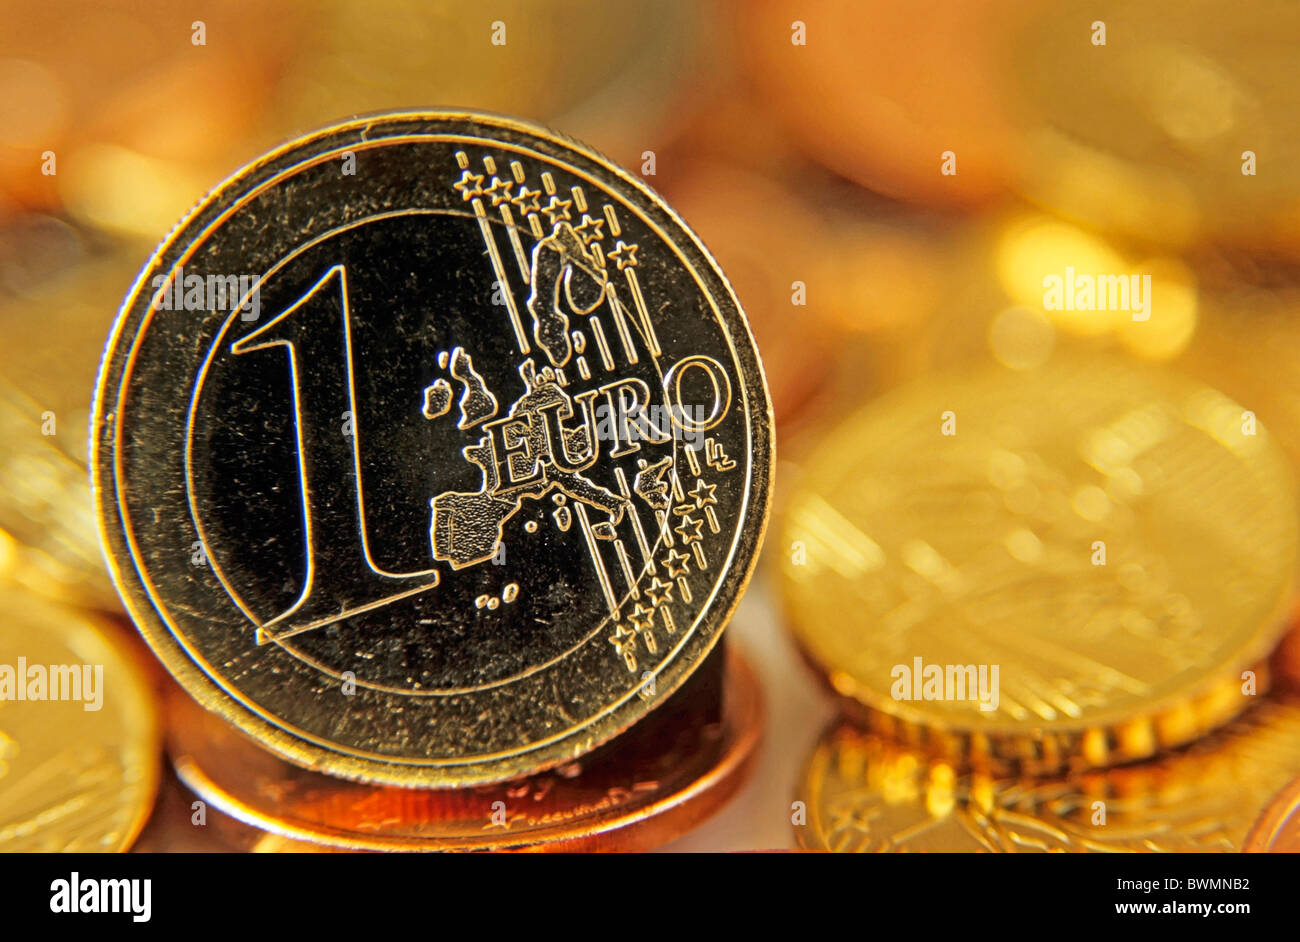 One Euro coin standing up amongst other Euros - Stock Image